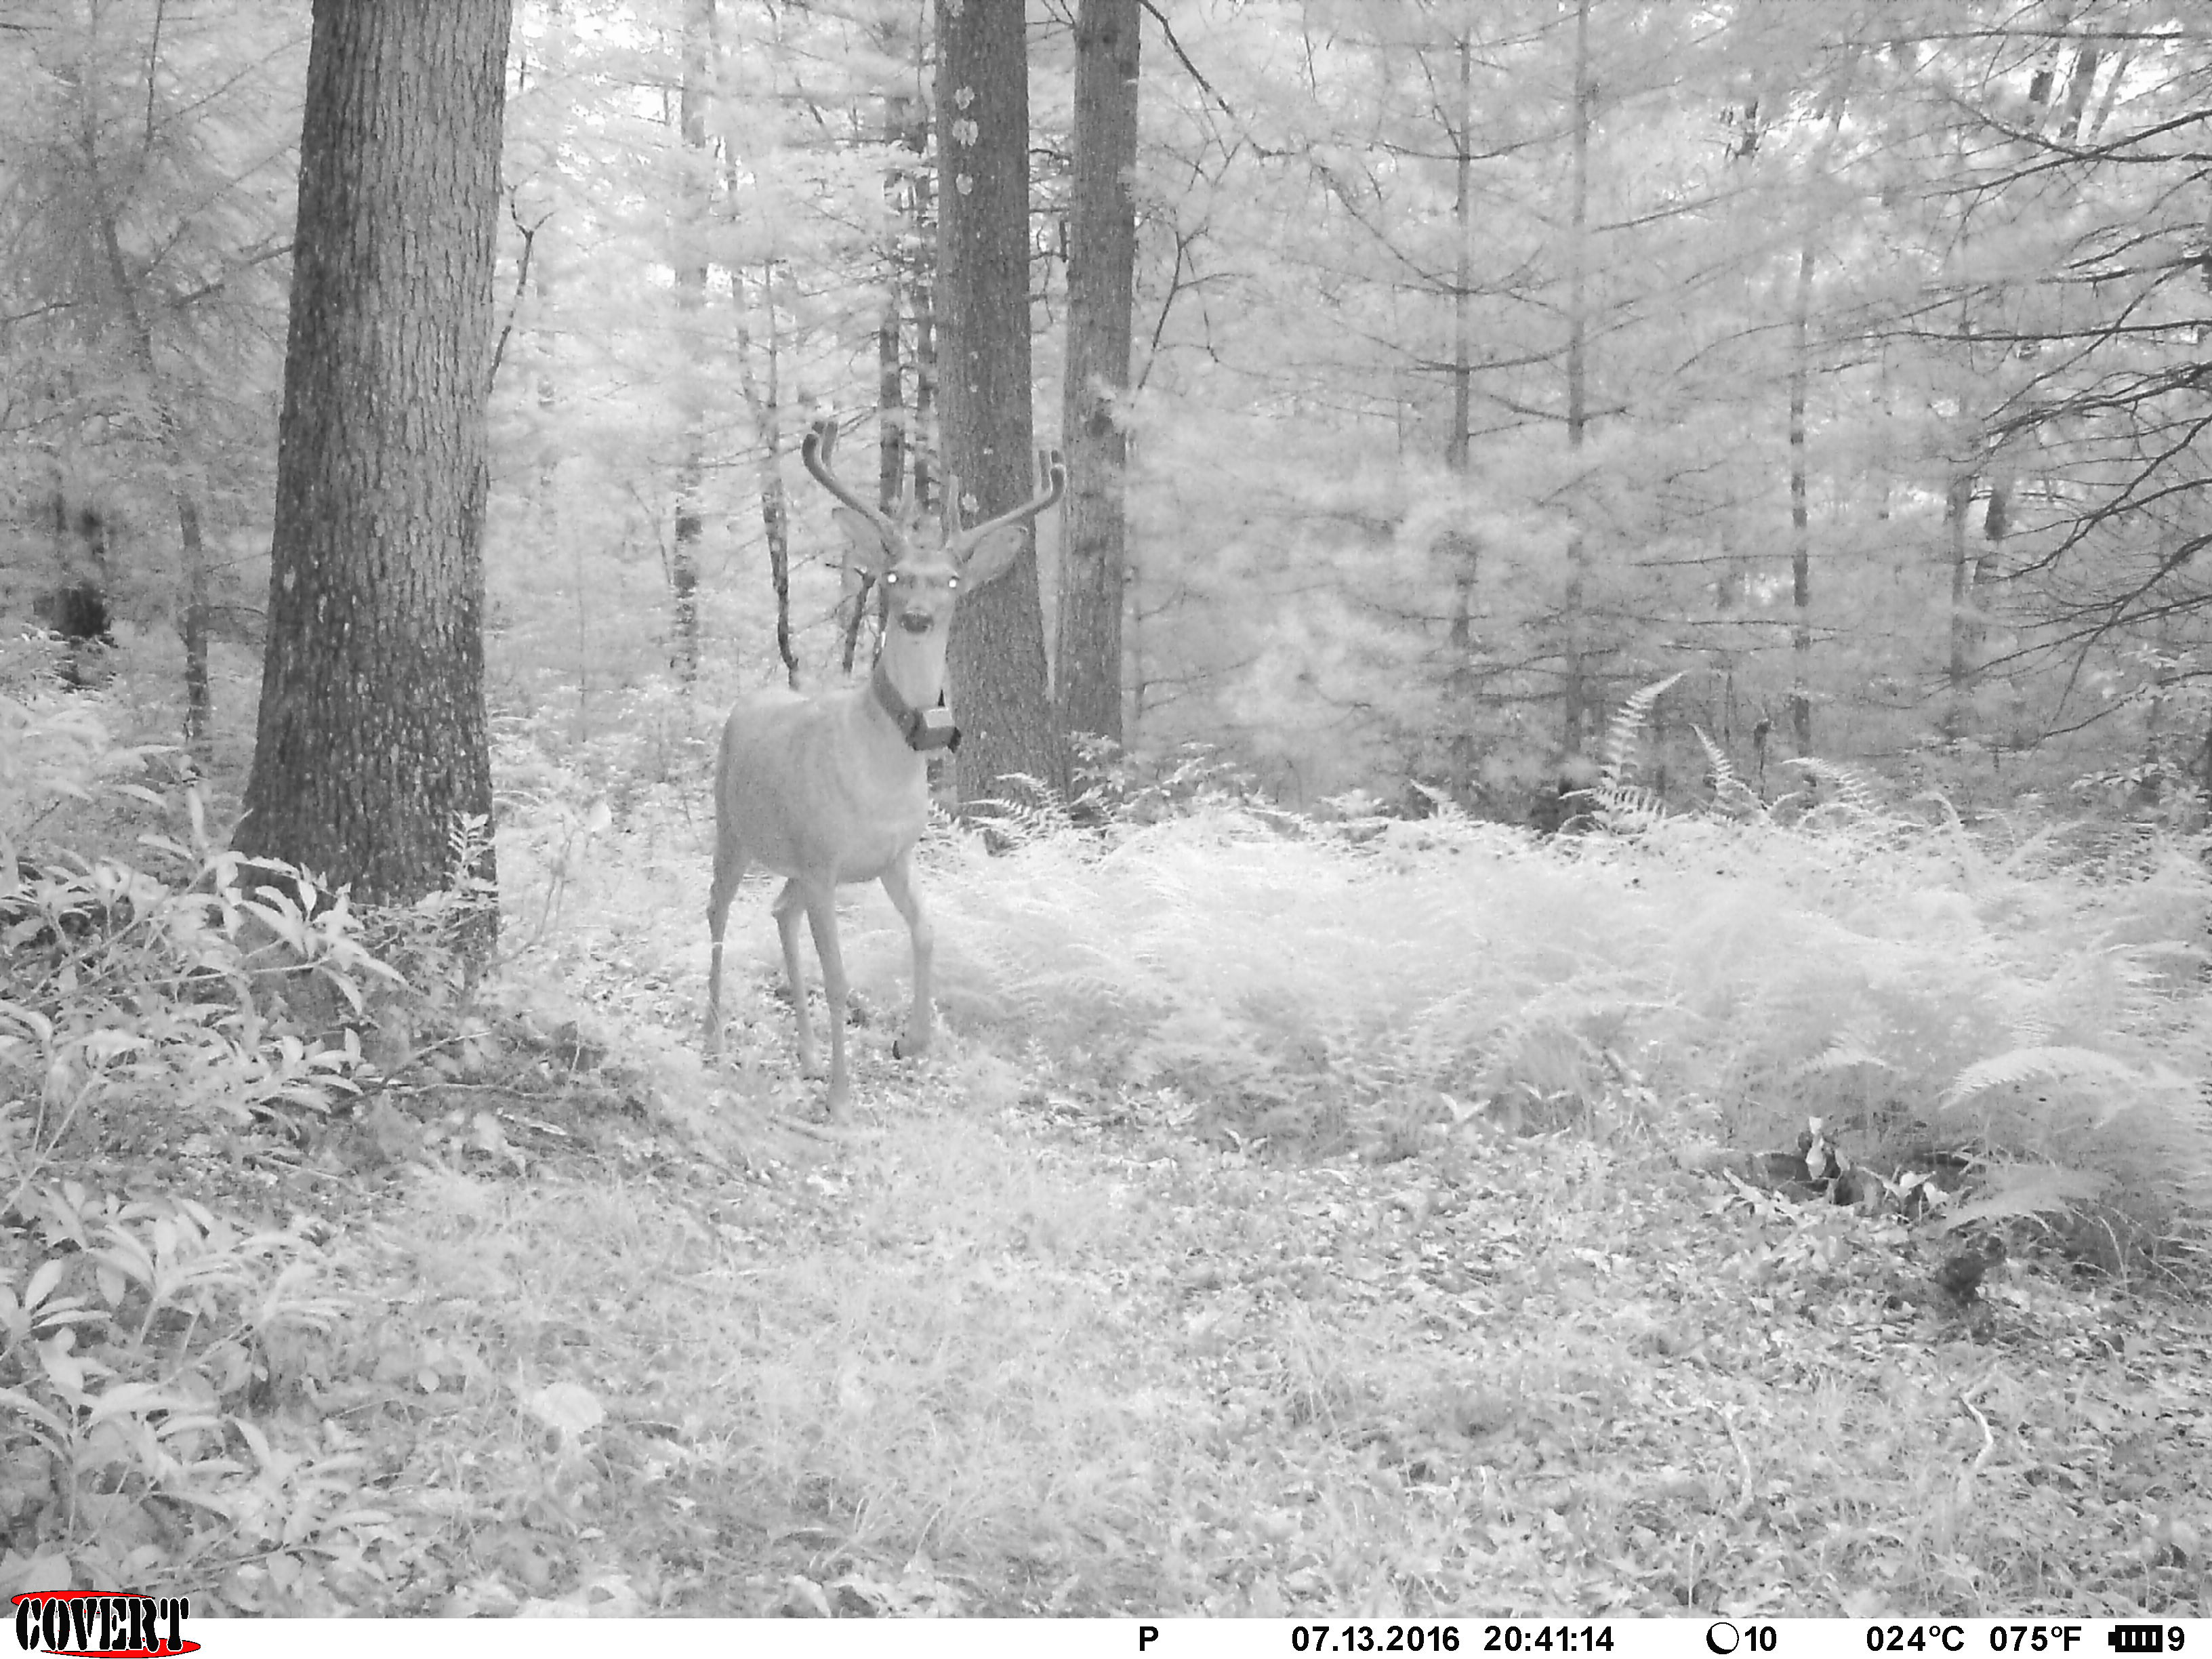 Radio-collared male white-tailed deer in Pennsylvania